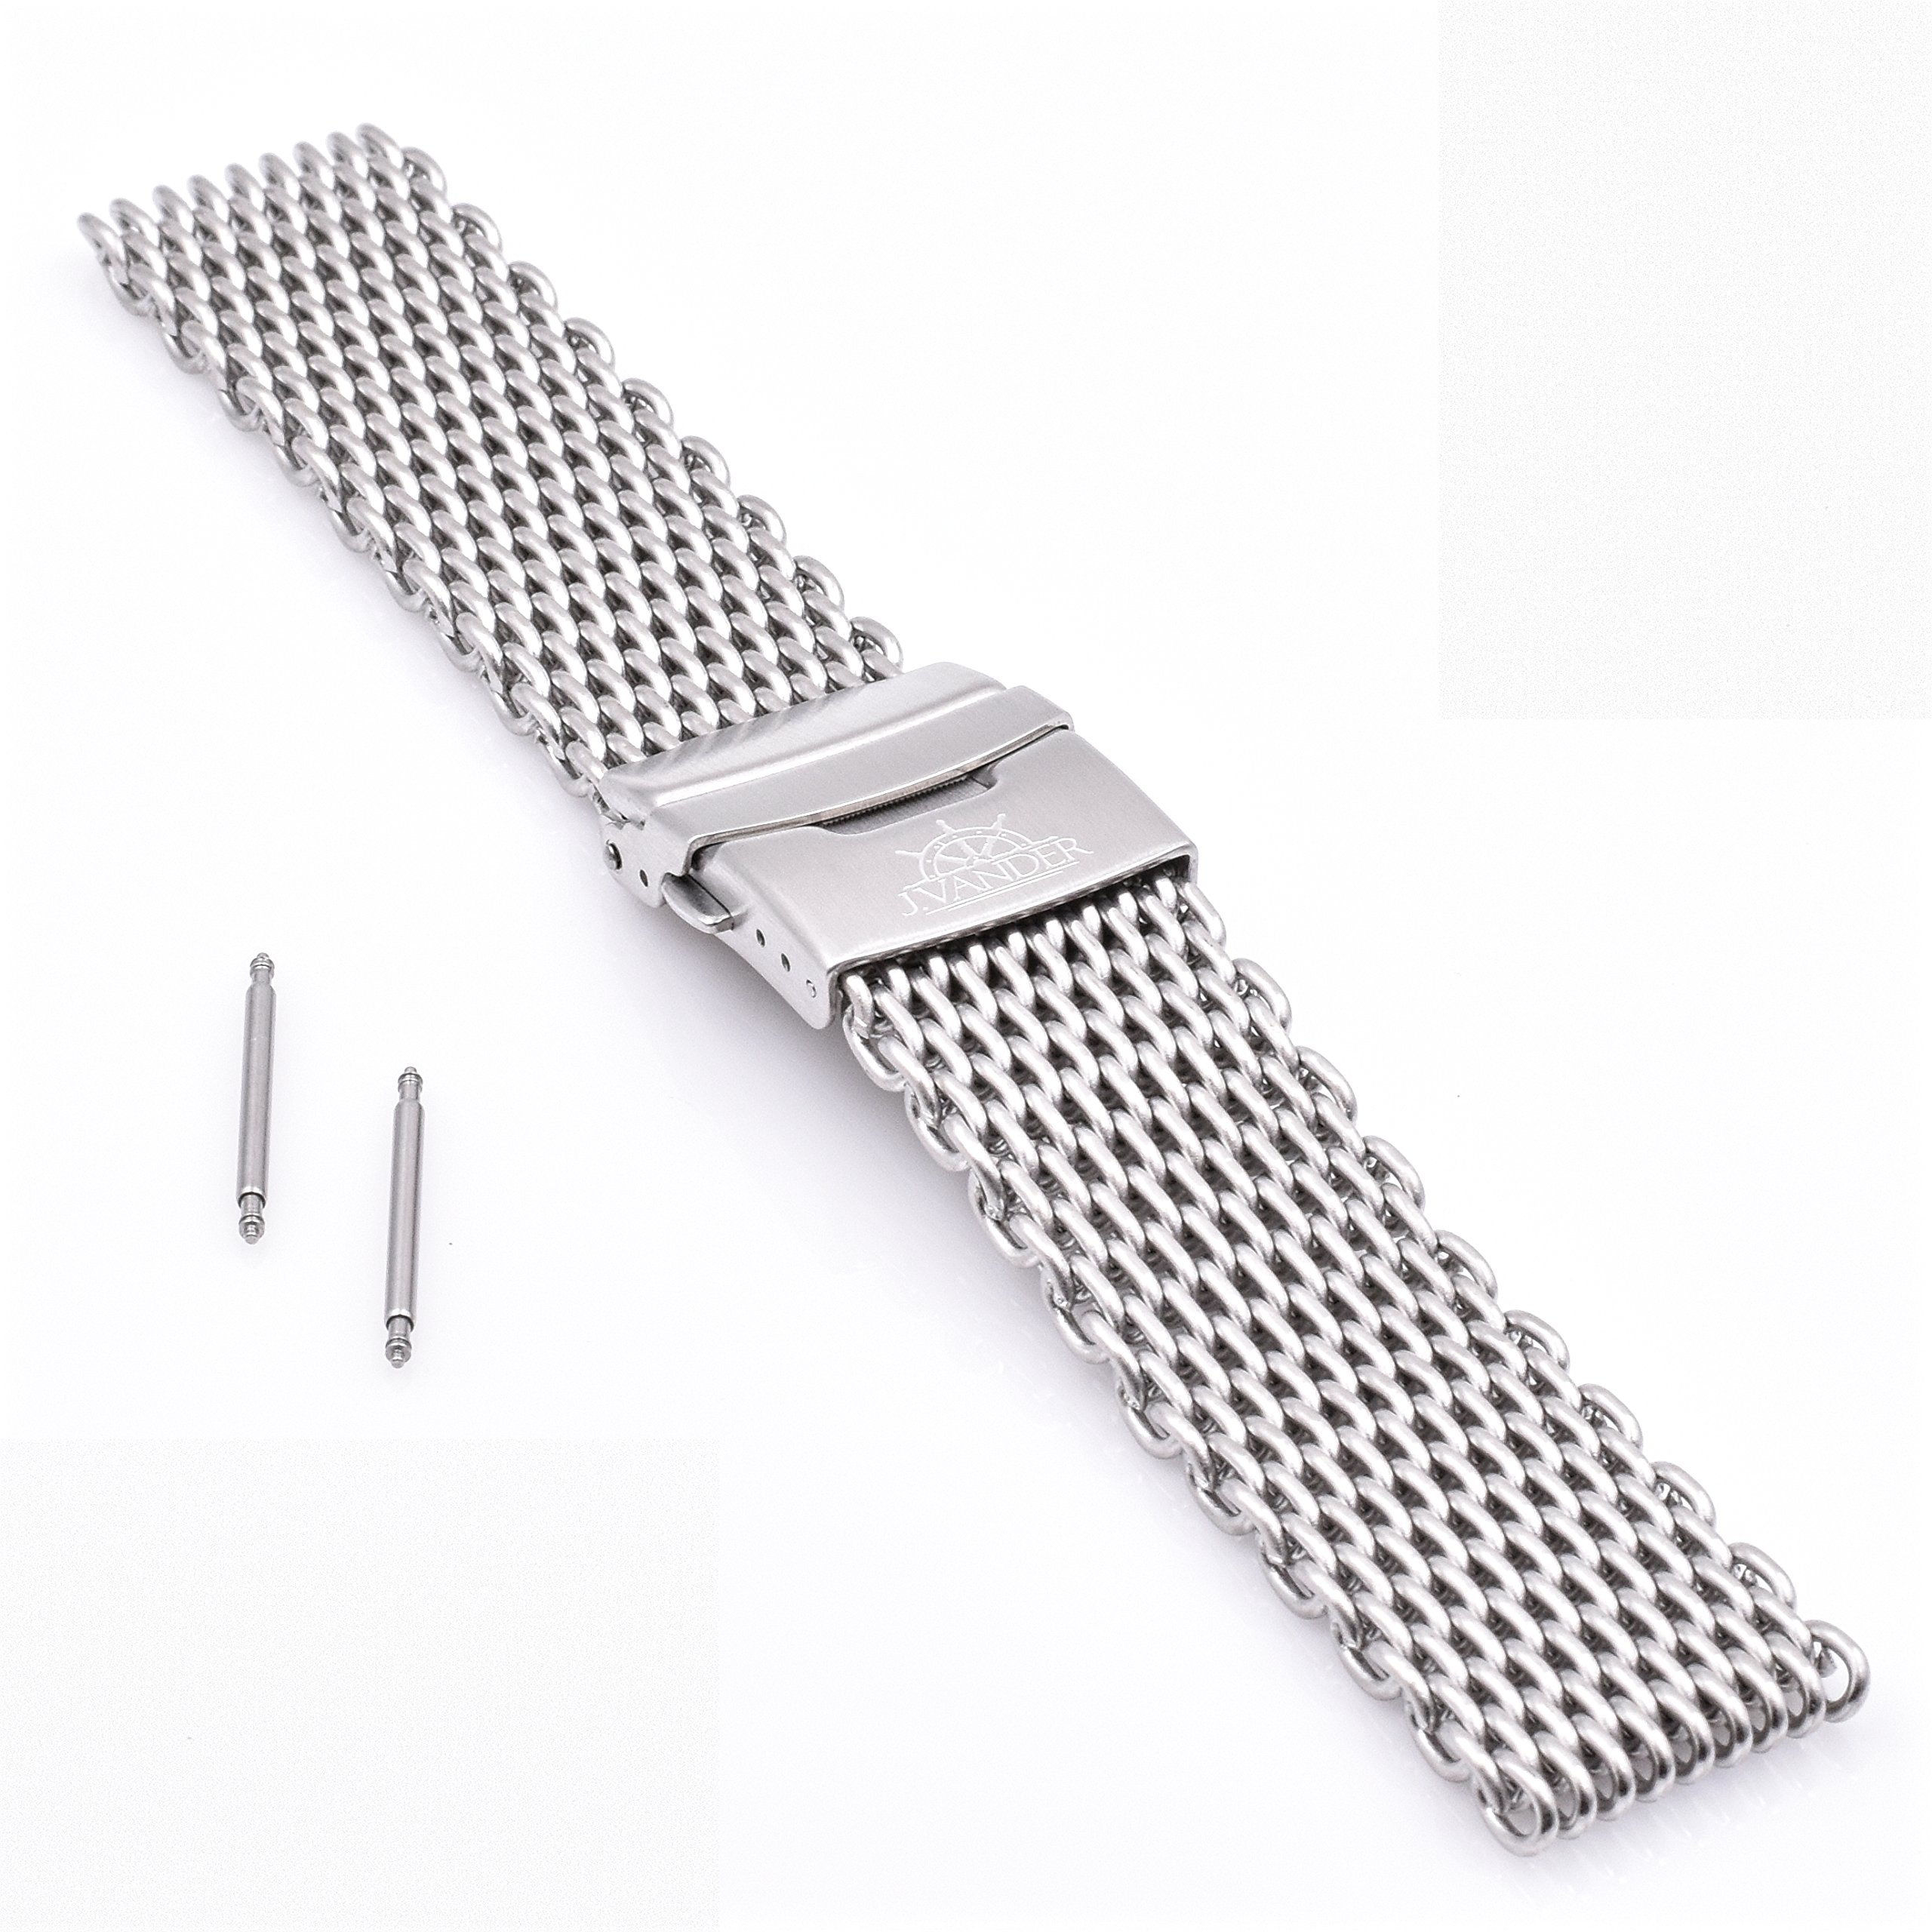 207b8655045e Get Quotations · J.VANDER V.2 Milanese 316L Stainless Steel Shark Mesh Dive Watch  Band Strap